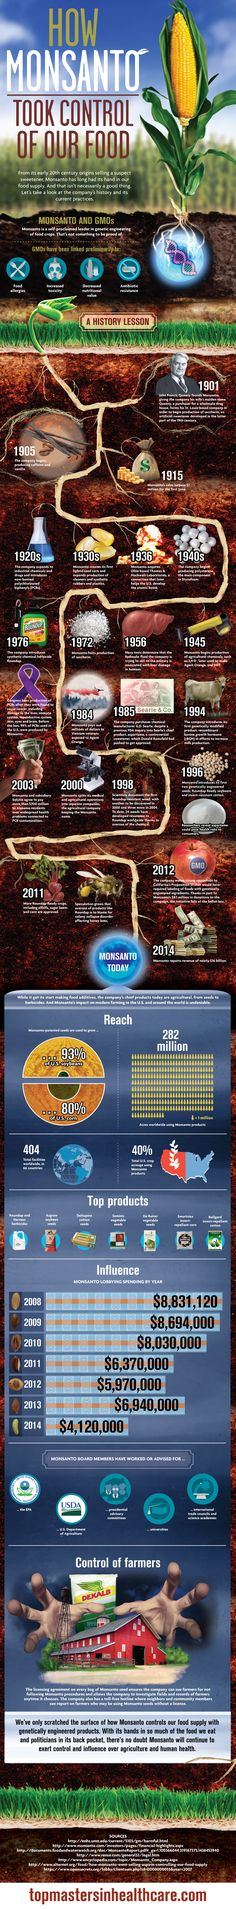 """How Monsanto Took Control of Our Food"" infographic #monsanto #gmo"